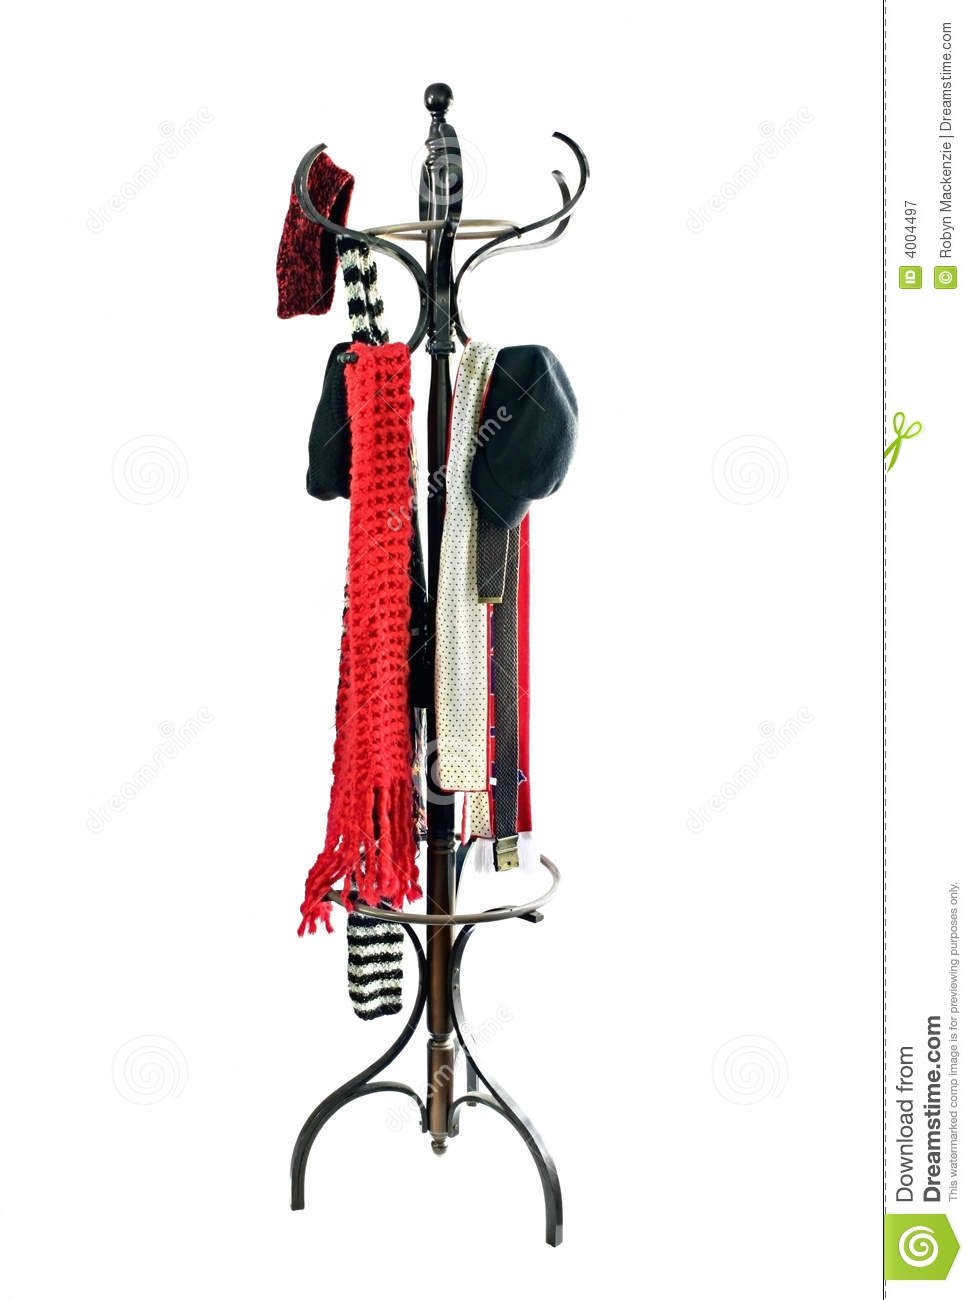 Coat Rack With Hats And Scarves Stock Image Image 4004497